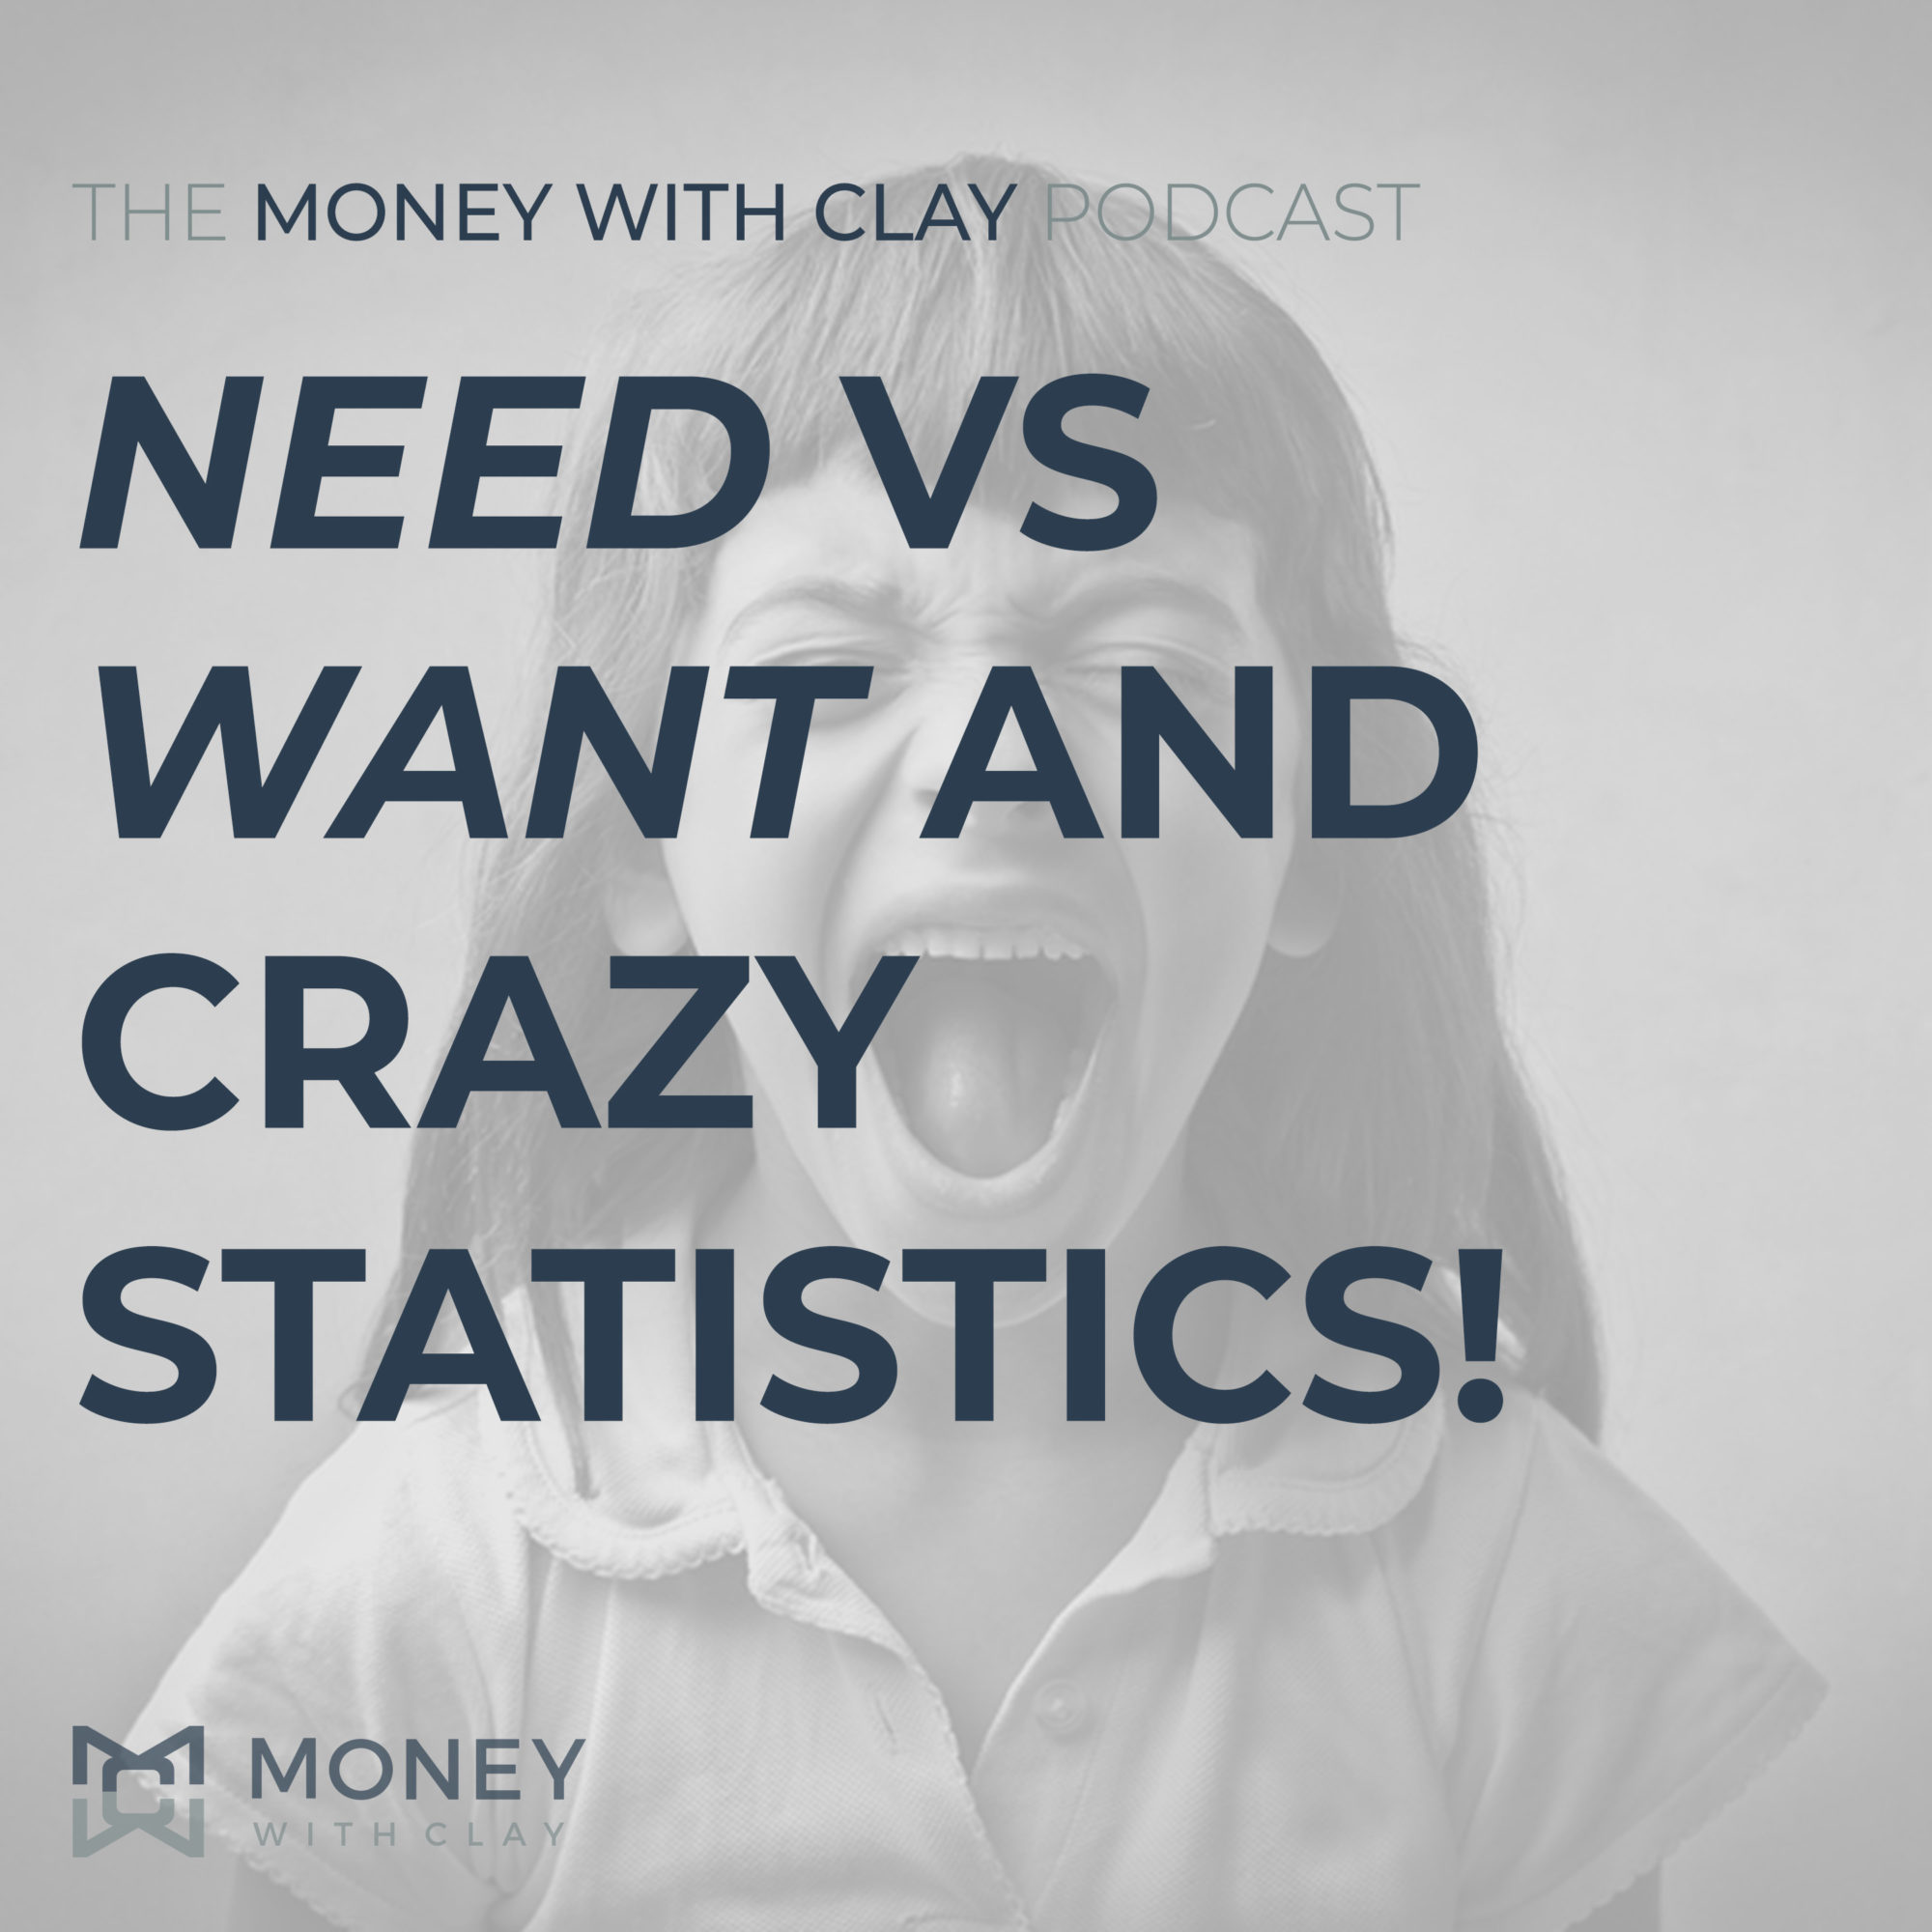 Need vs. Want and Crazy Statistics!